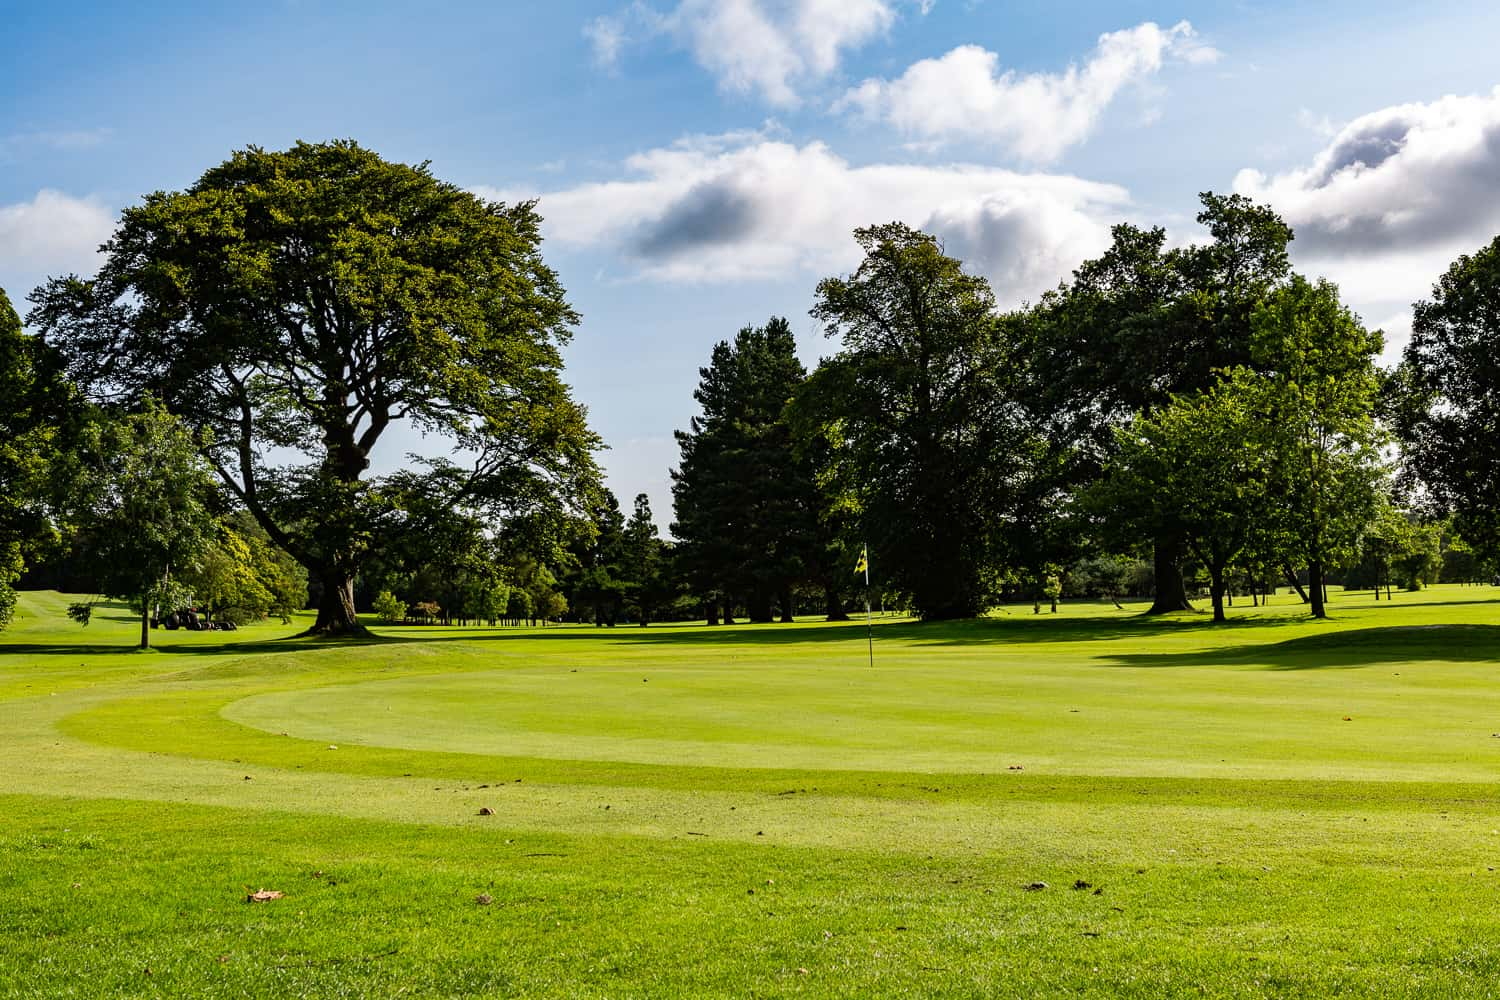 Uphall_Golf_Club_Course_Images (23 of 32)